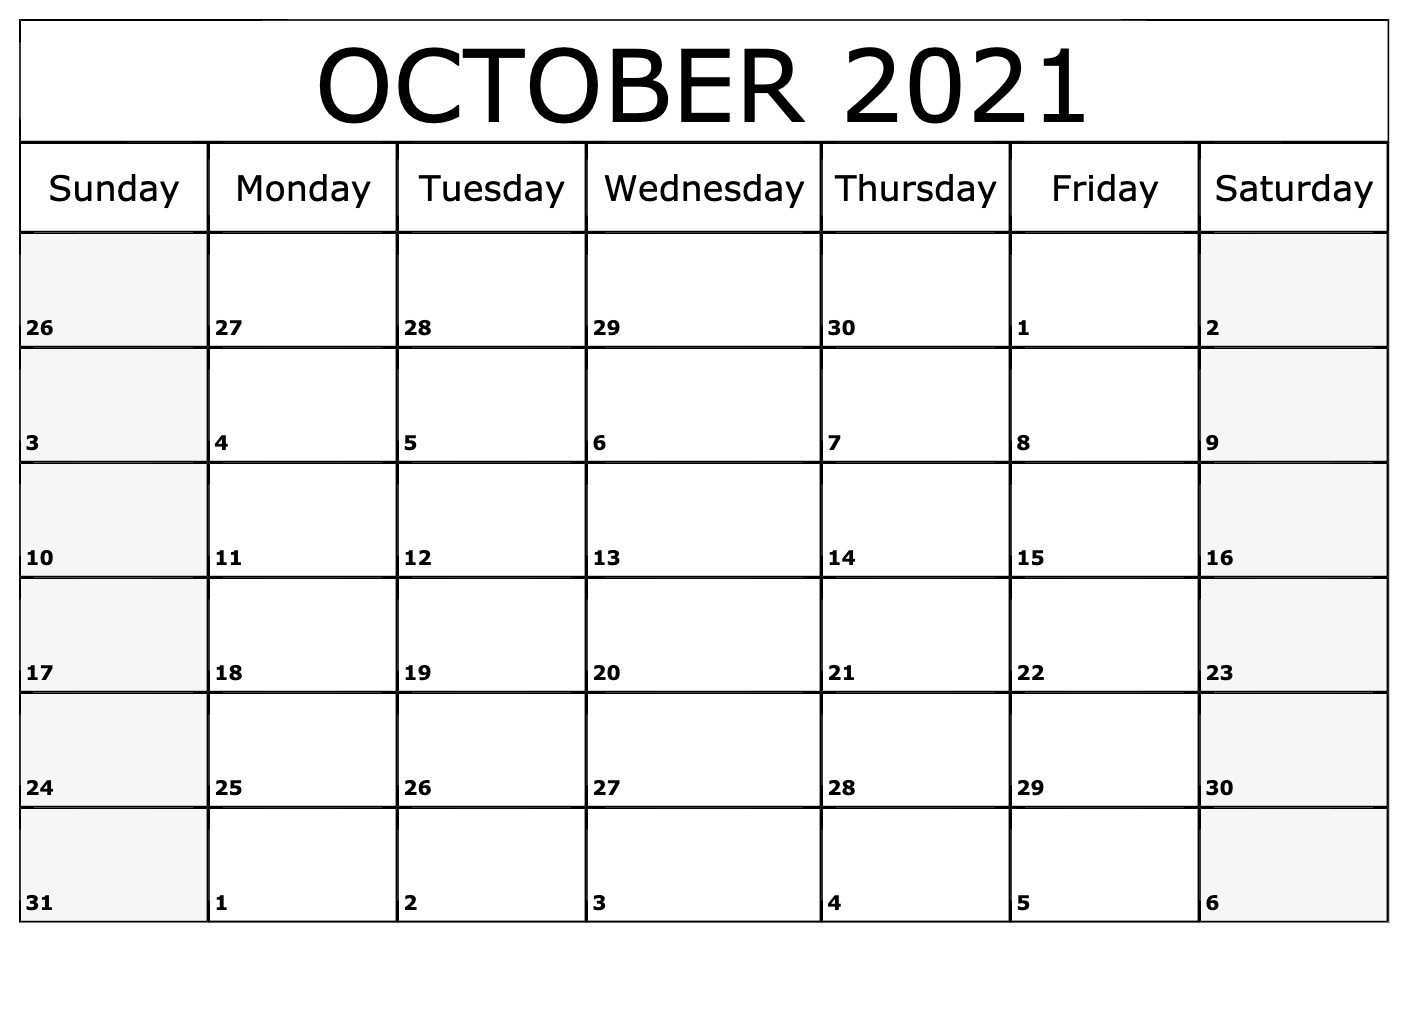 October 2021 Calendar Horizontally Free Layouts For-Jewish Calendar For October 2021